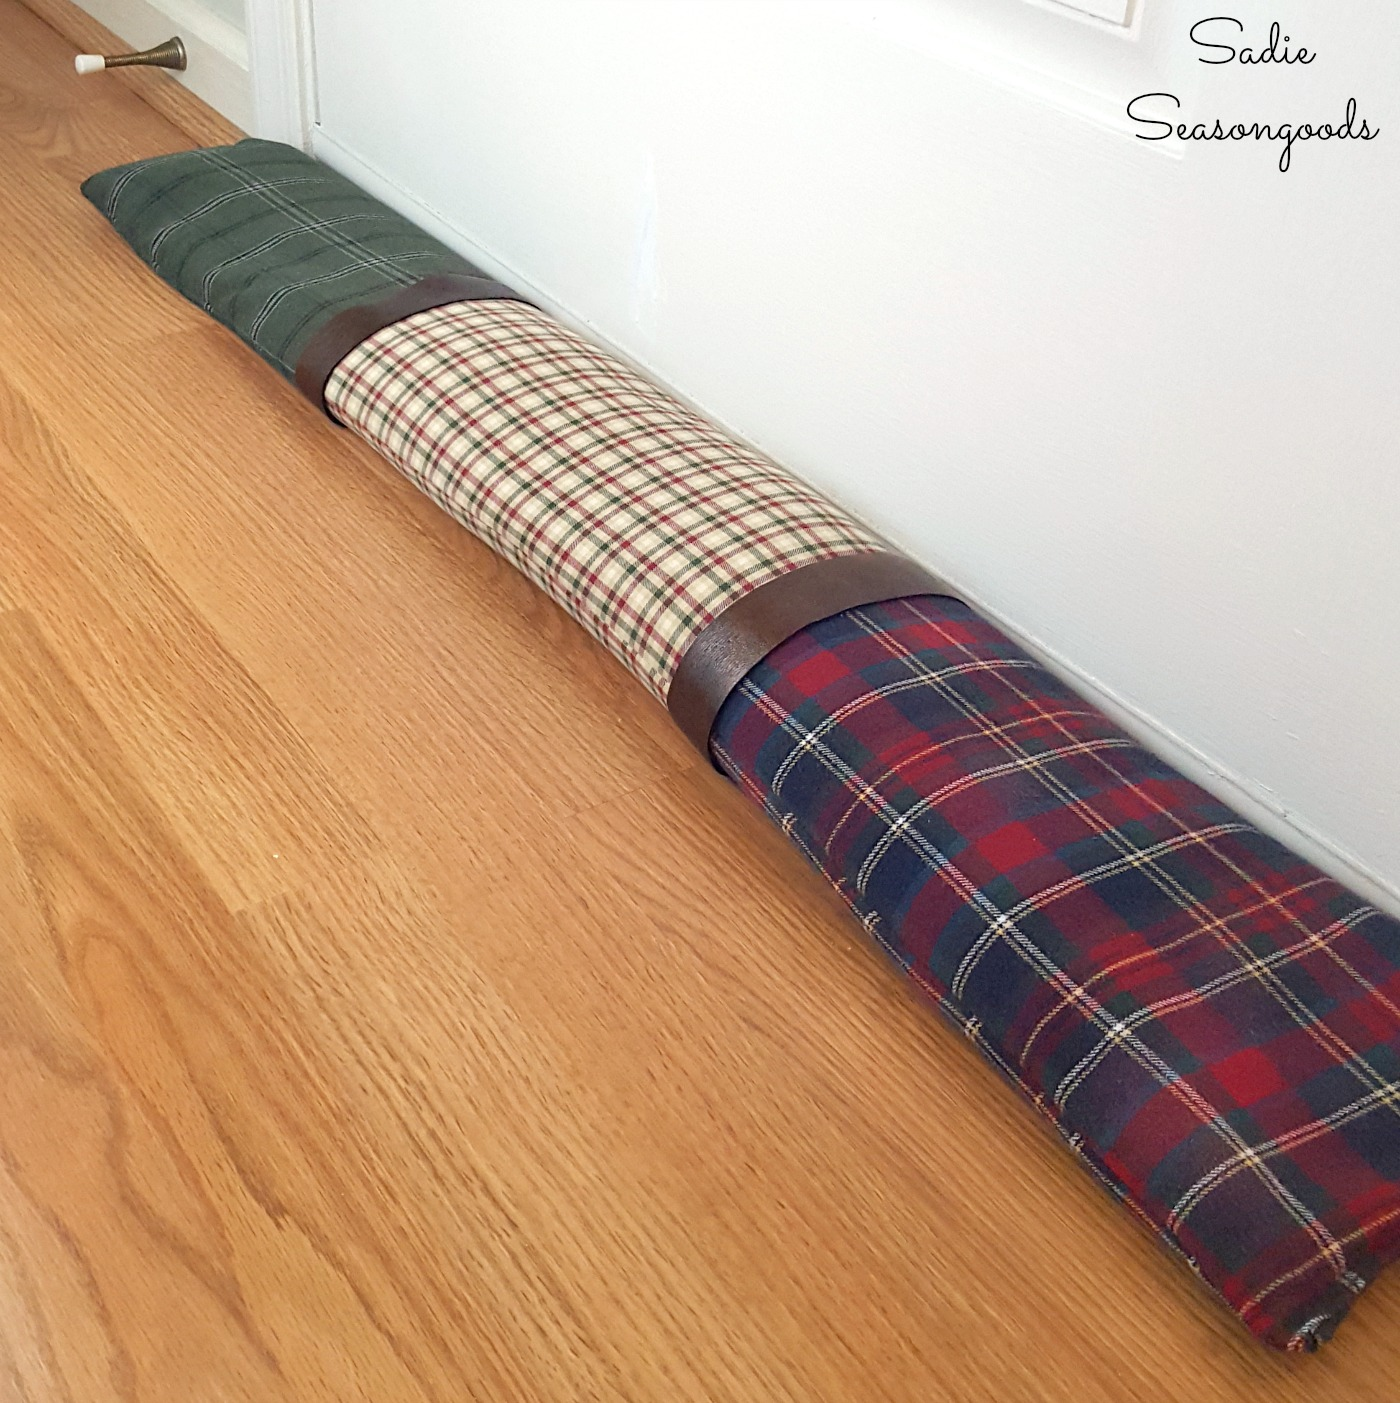 Door draft guard or draft stopper made from repurposed clothing and flannel shirts as cabin decor or rustic decor